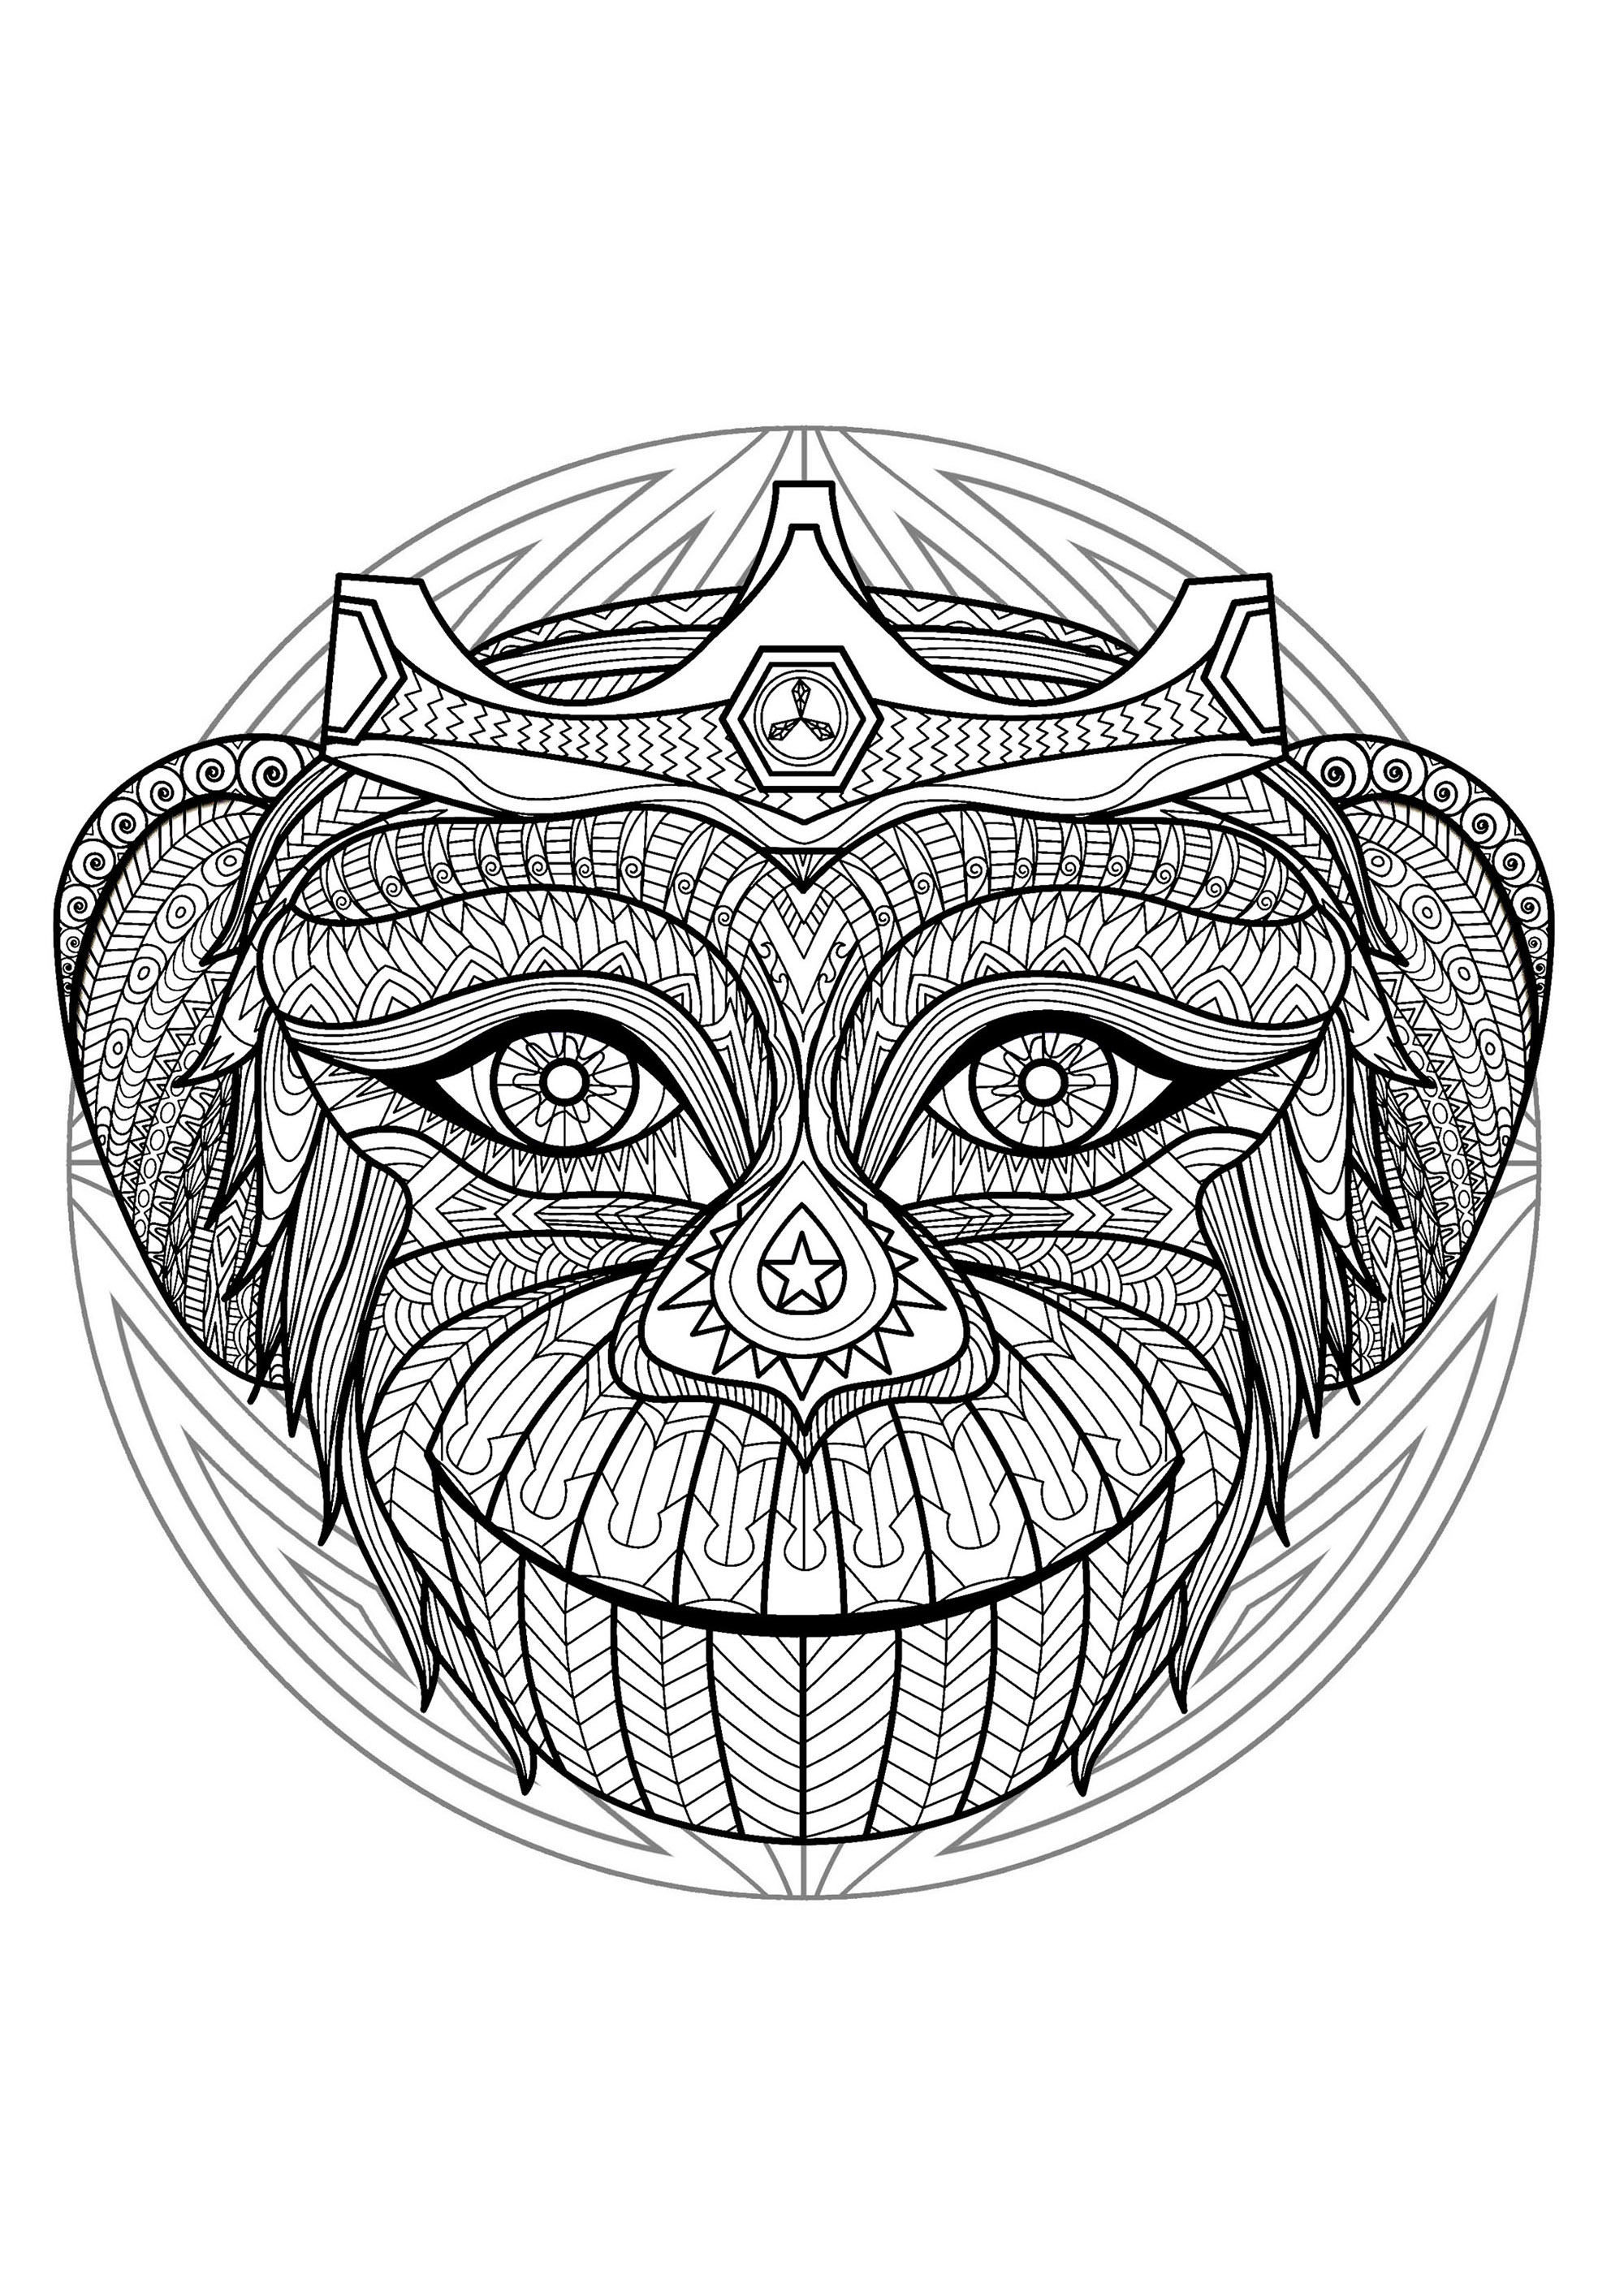 Free Mandalas Coloring Page To Print And Color